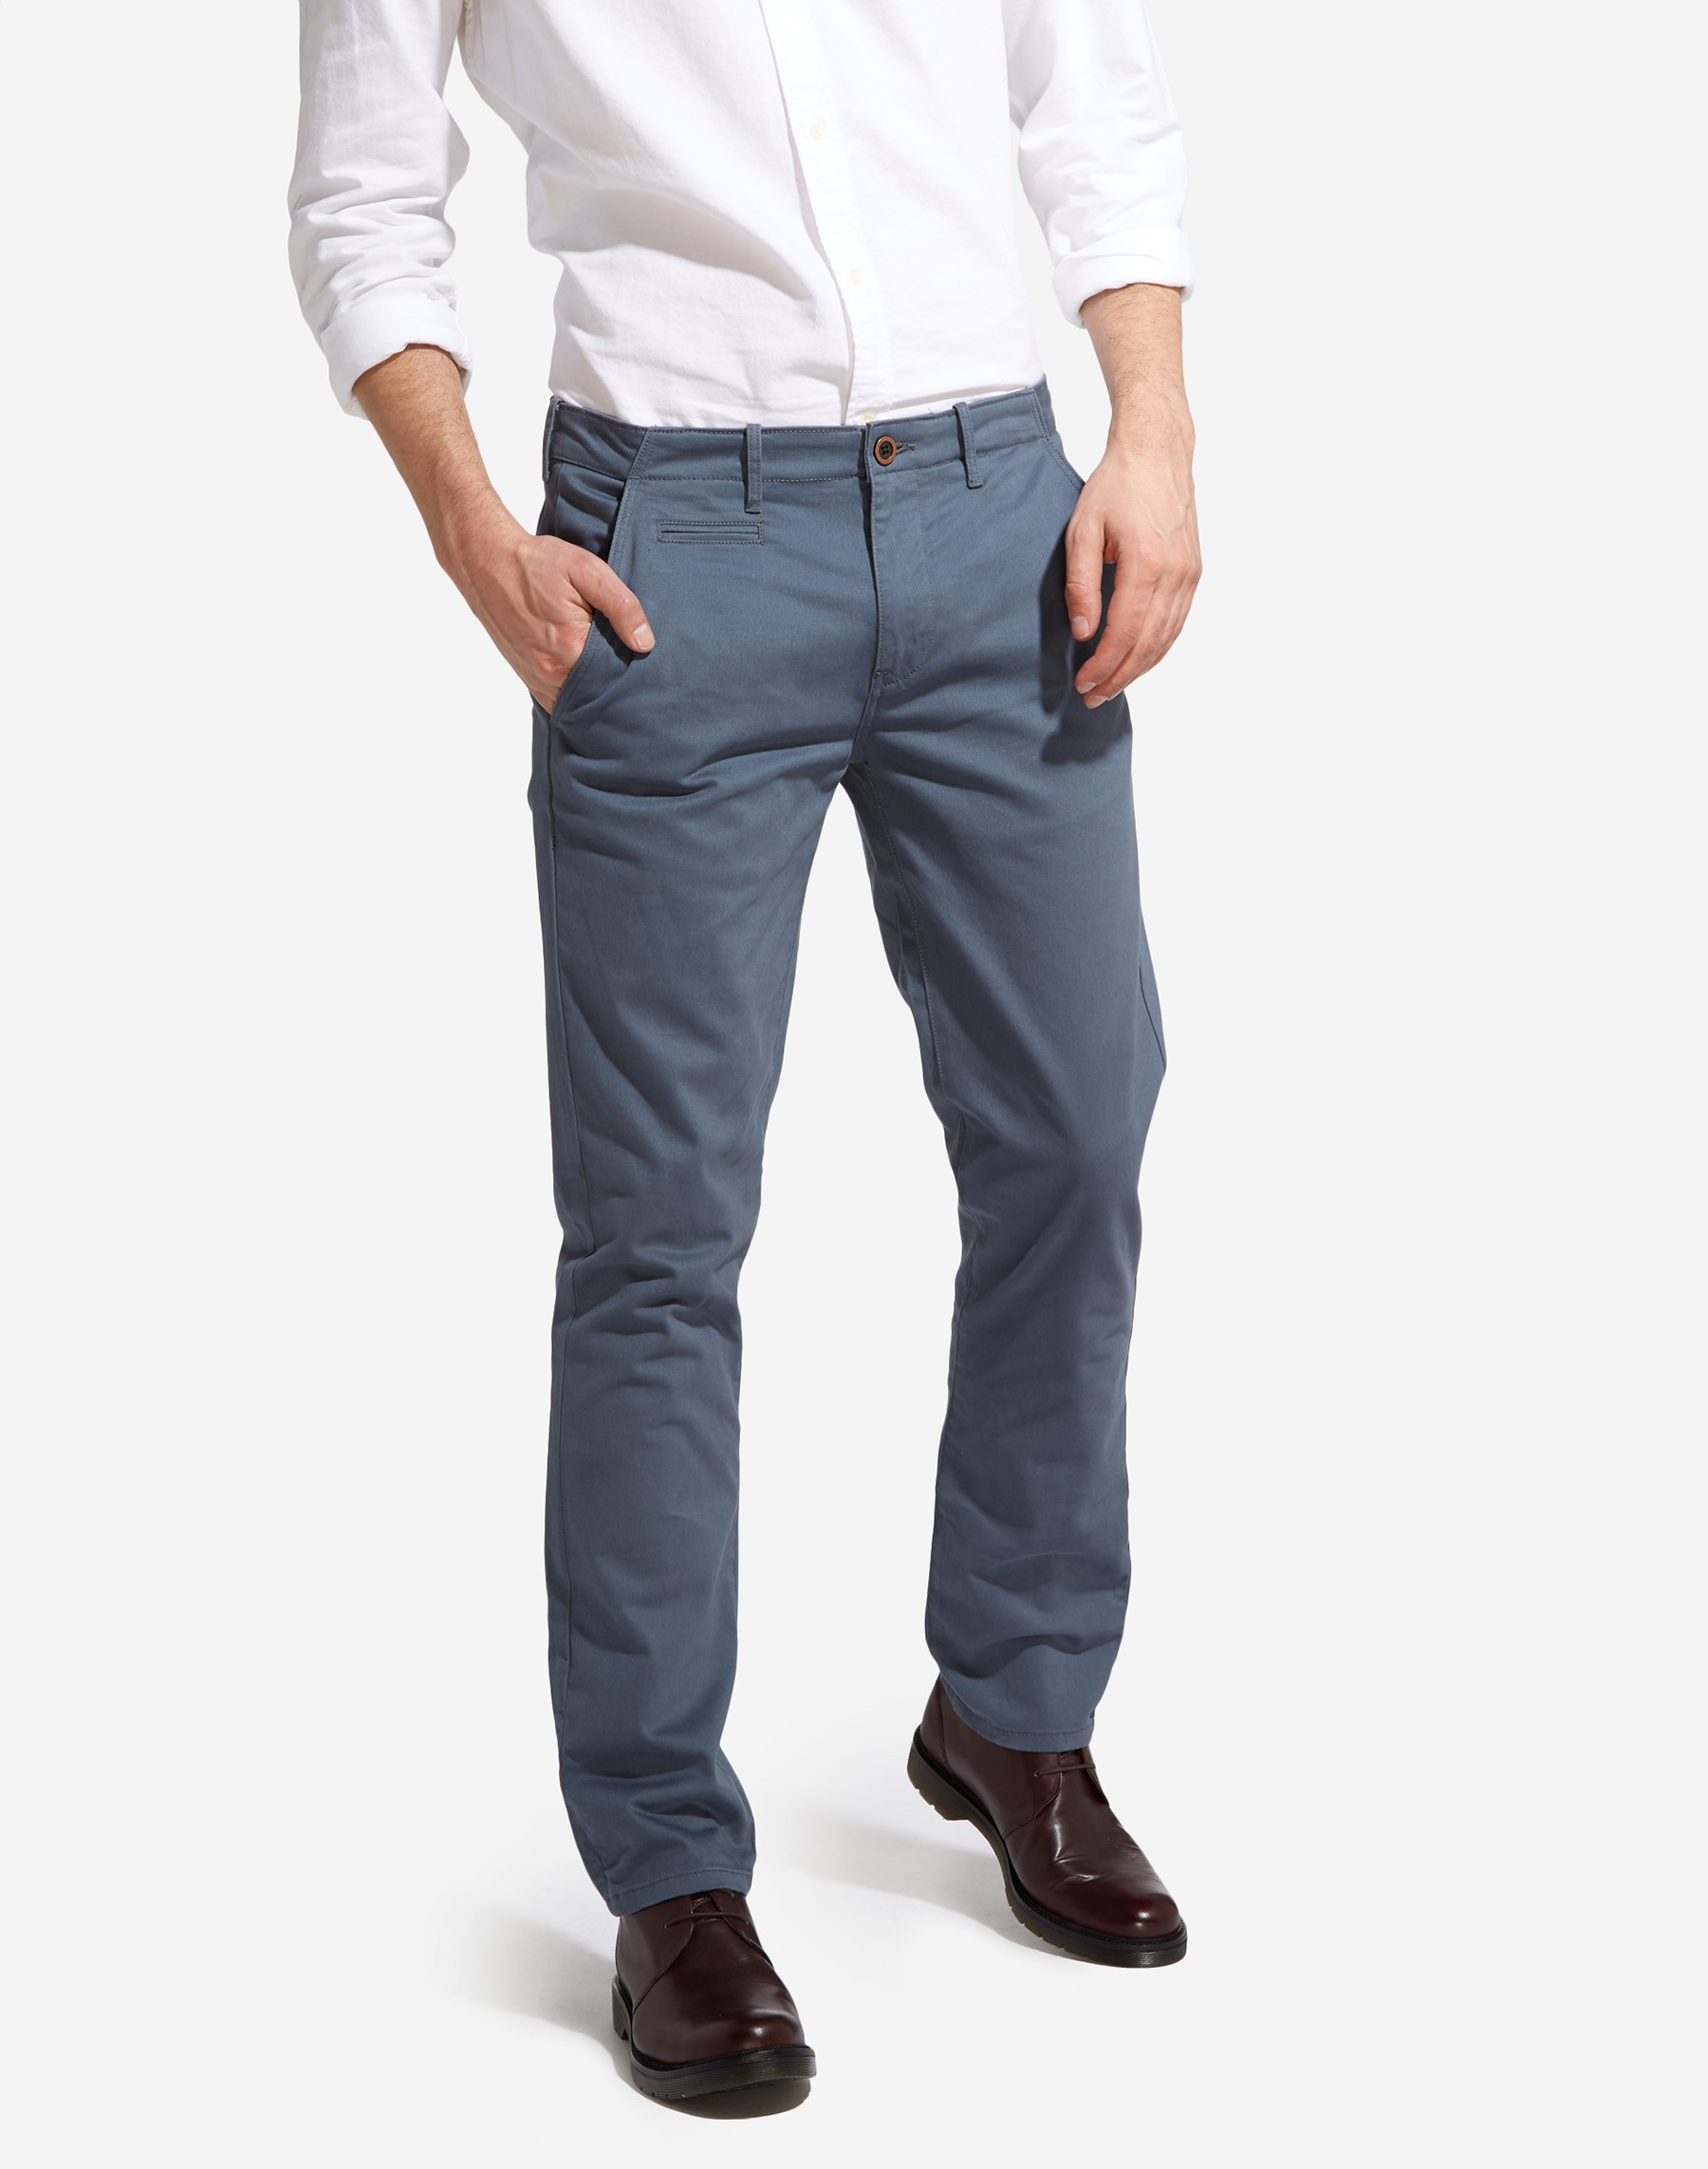 Chino Jeans item/1 ... WJZAGBW